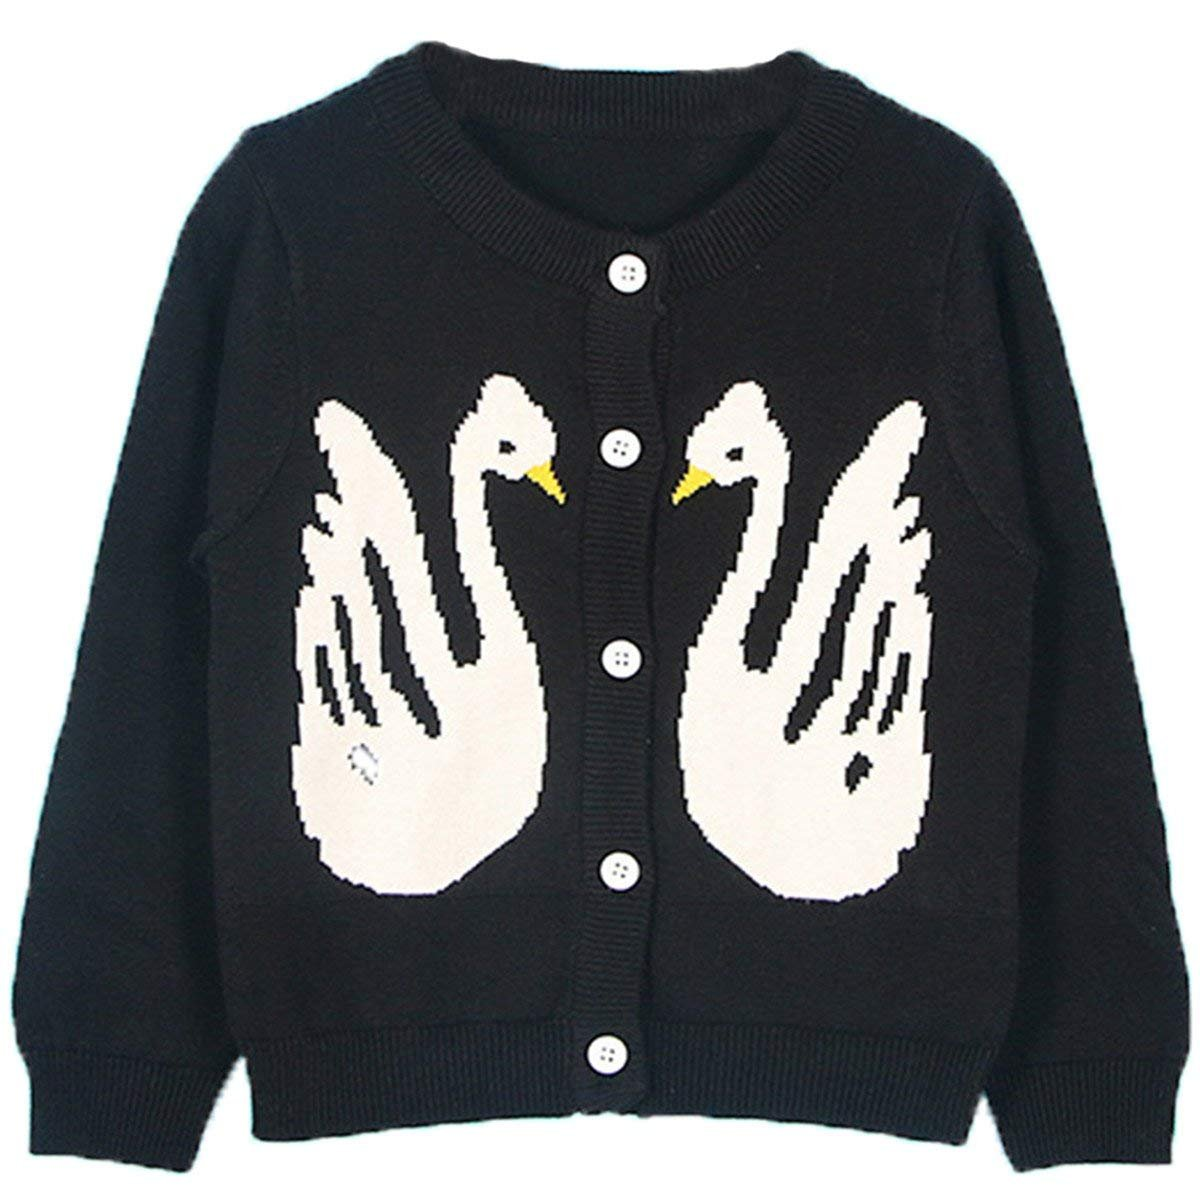 Maylife Little Girls Crew Neck Button-Down Swan Print Fine Knit Cardigan Sweaters by Maylife (Image #1)